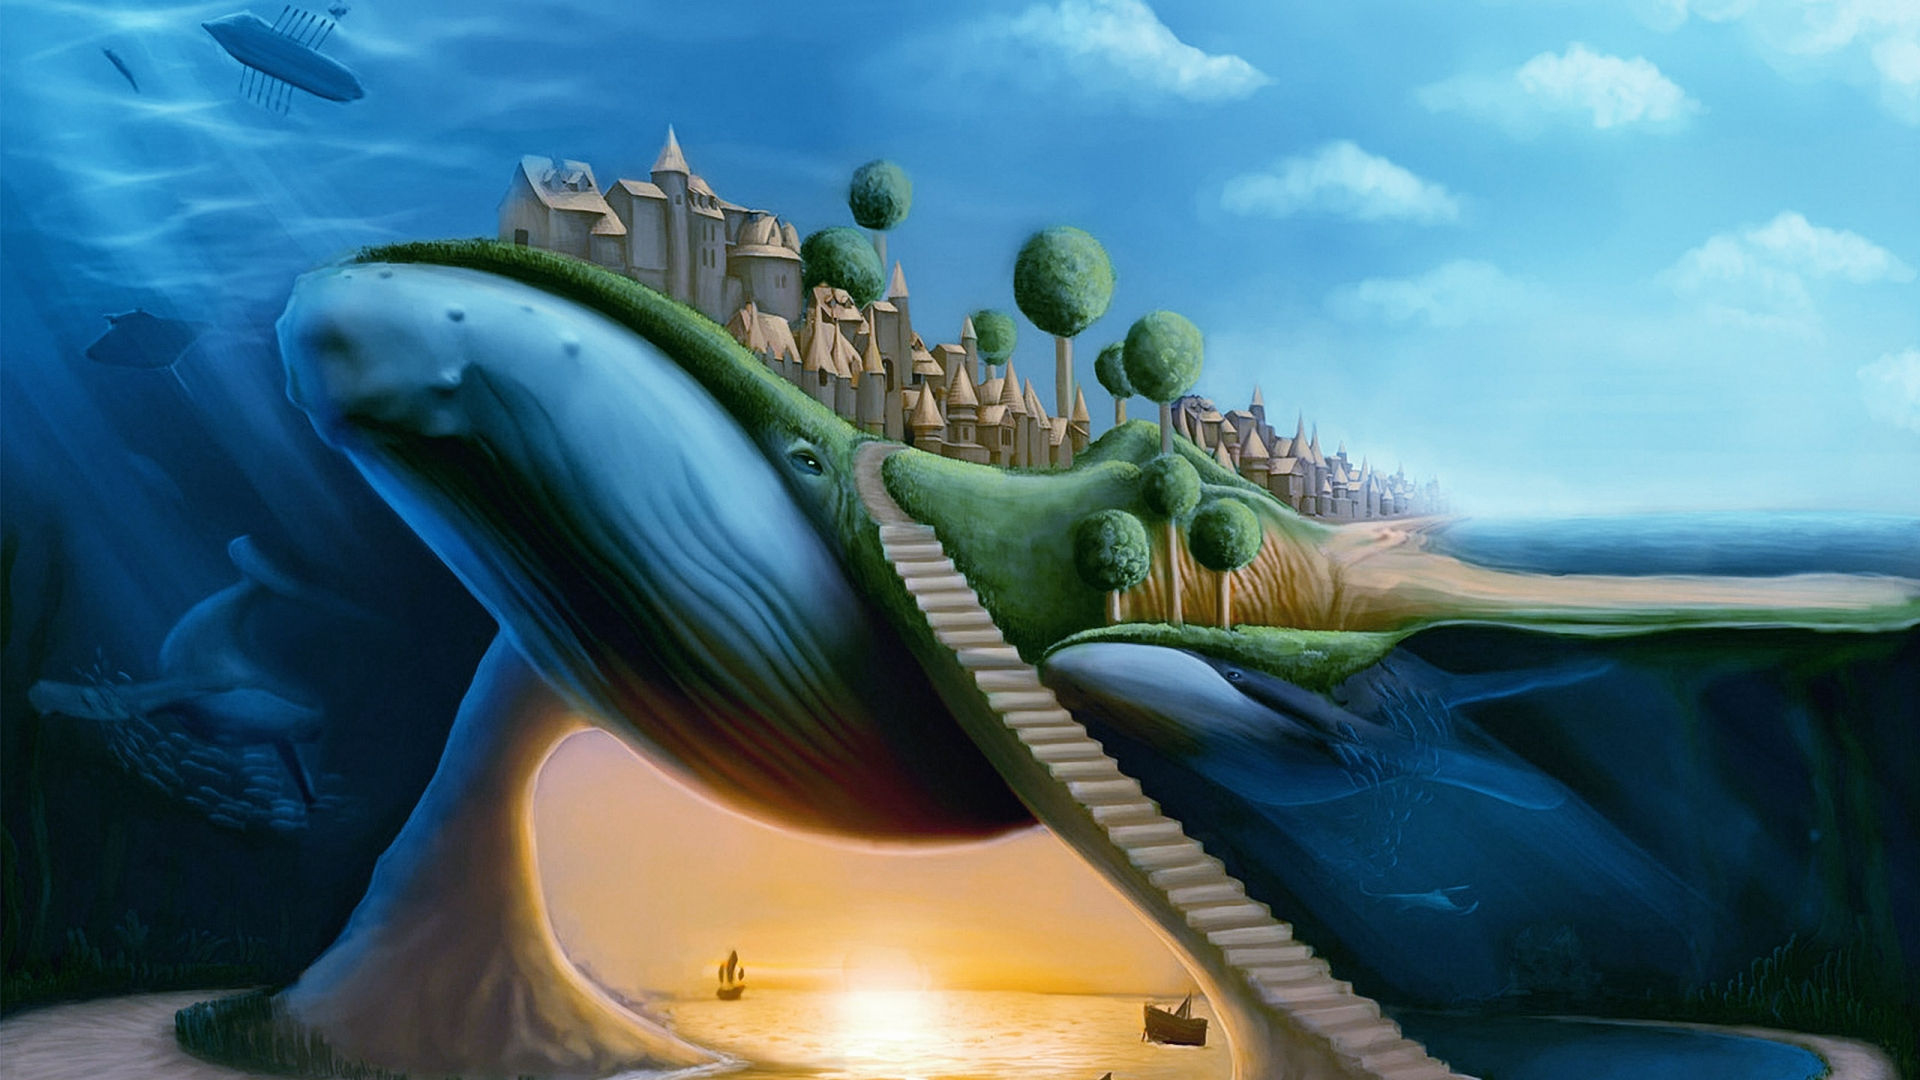 animals whales surreal dream fantasy whale cities travel ocean sea